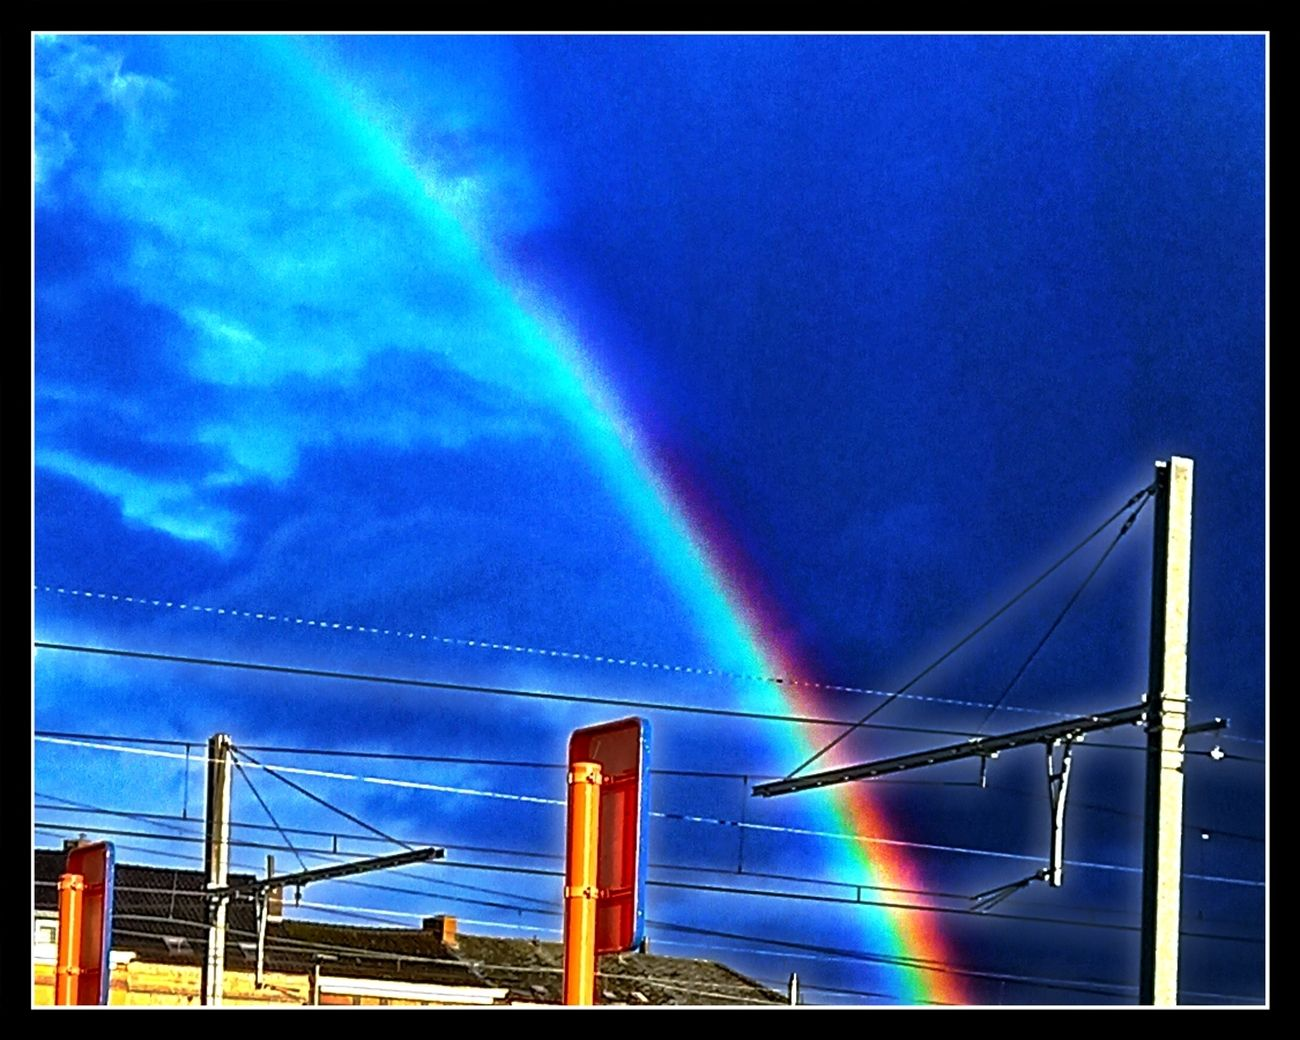 I didn't want to miss this beautiful rainbow Sincerely Theo-Herbots-Fotogtraaf https://theoherbots.wixsite.com/website-80